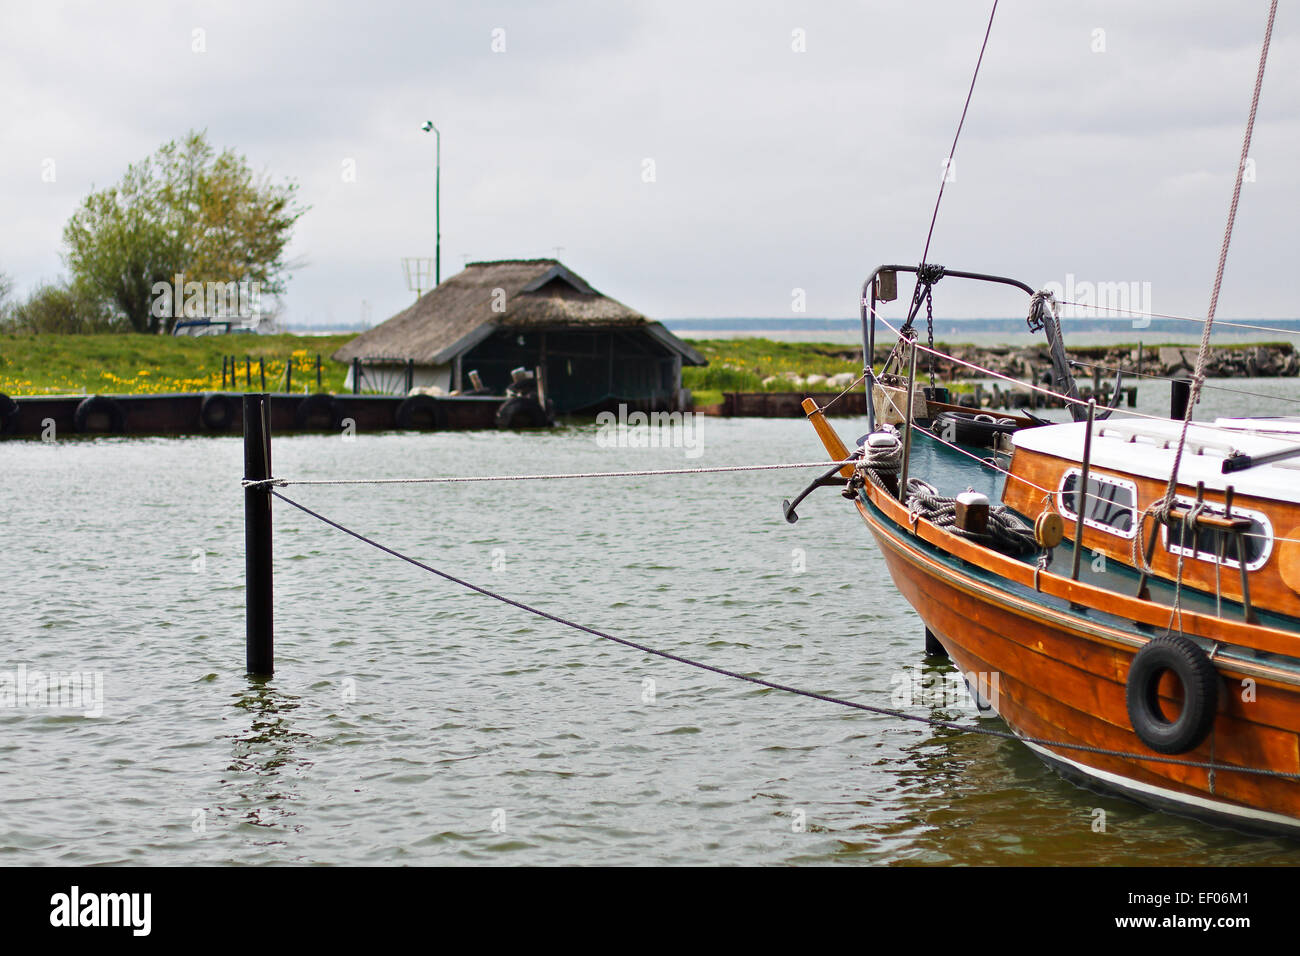 A port on the fish-Darß. - Stock Image